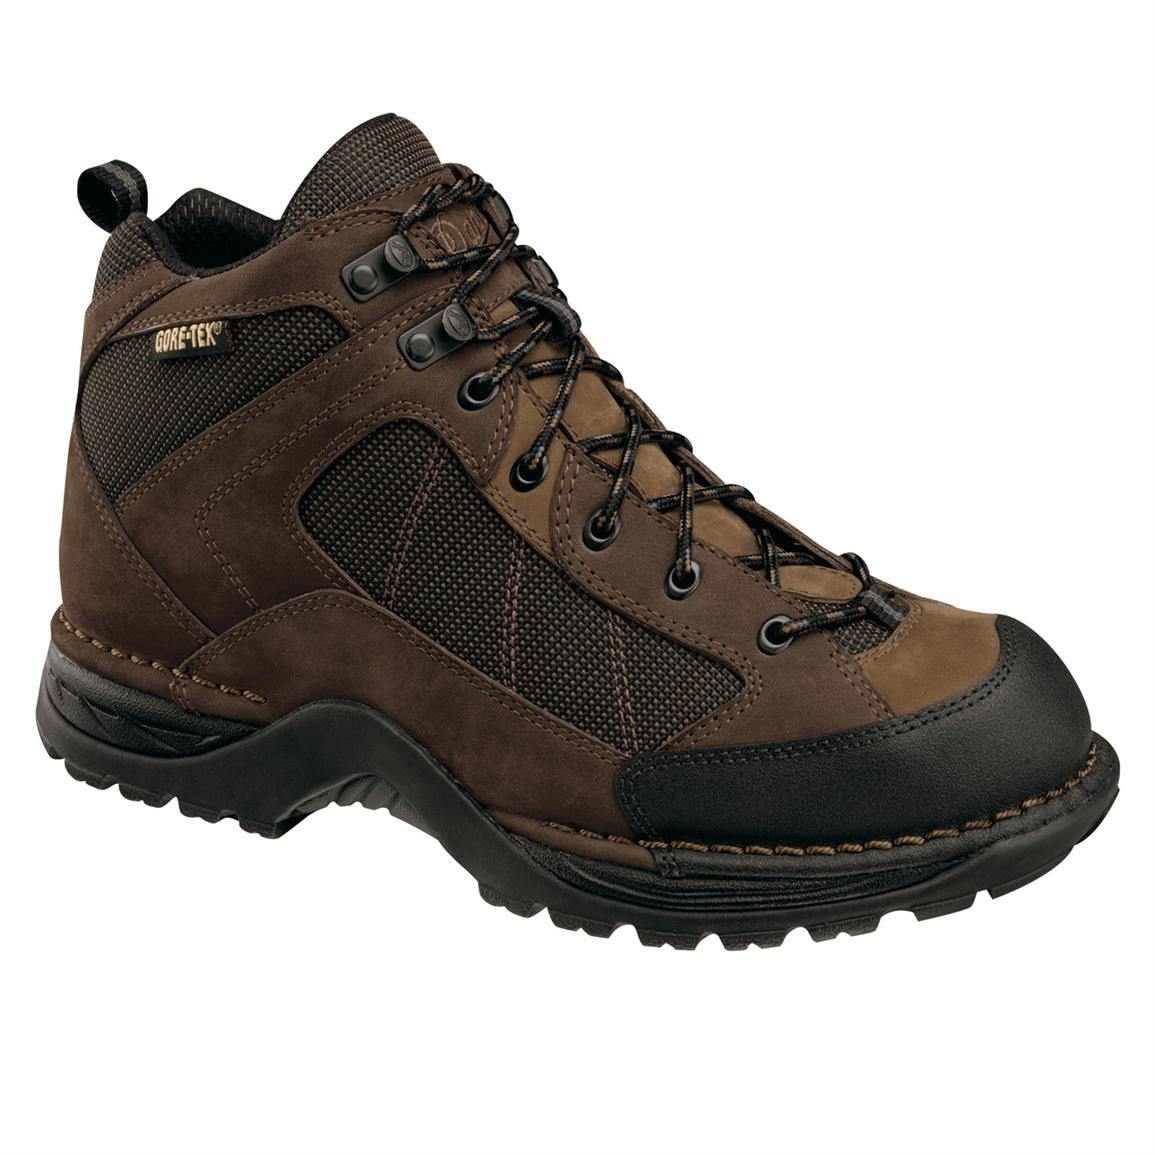 Danner Gore Tex Hiking Boots 3fwyuBnJ